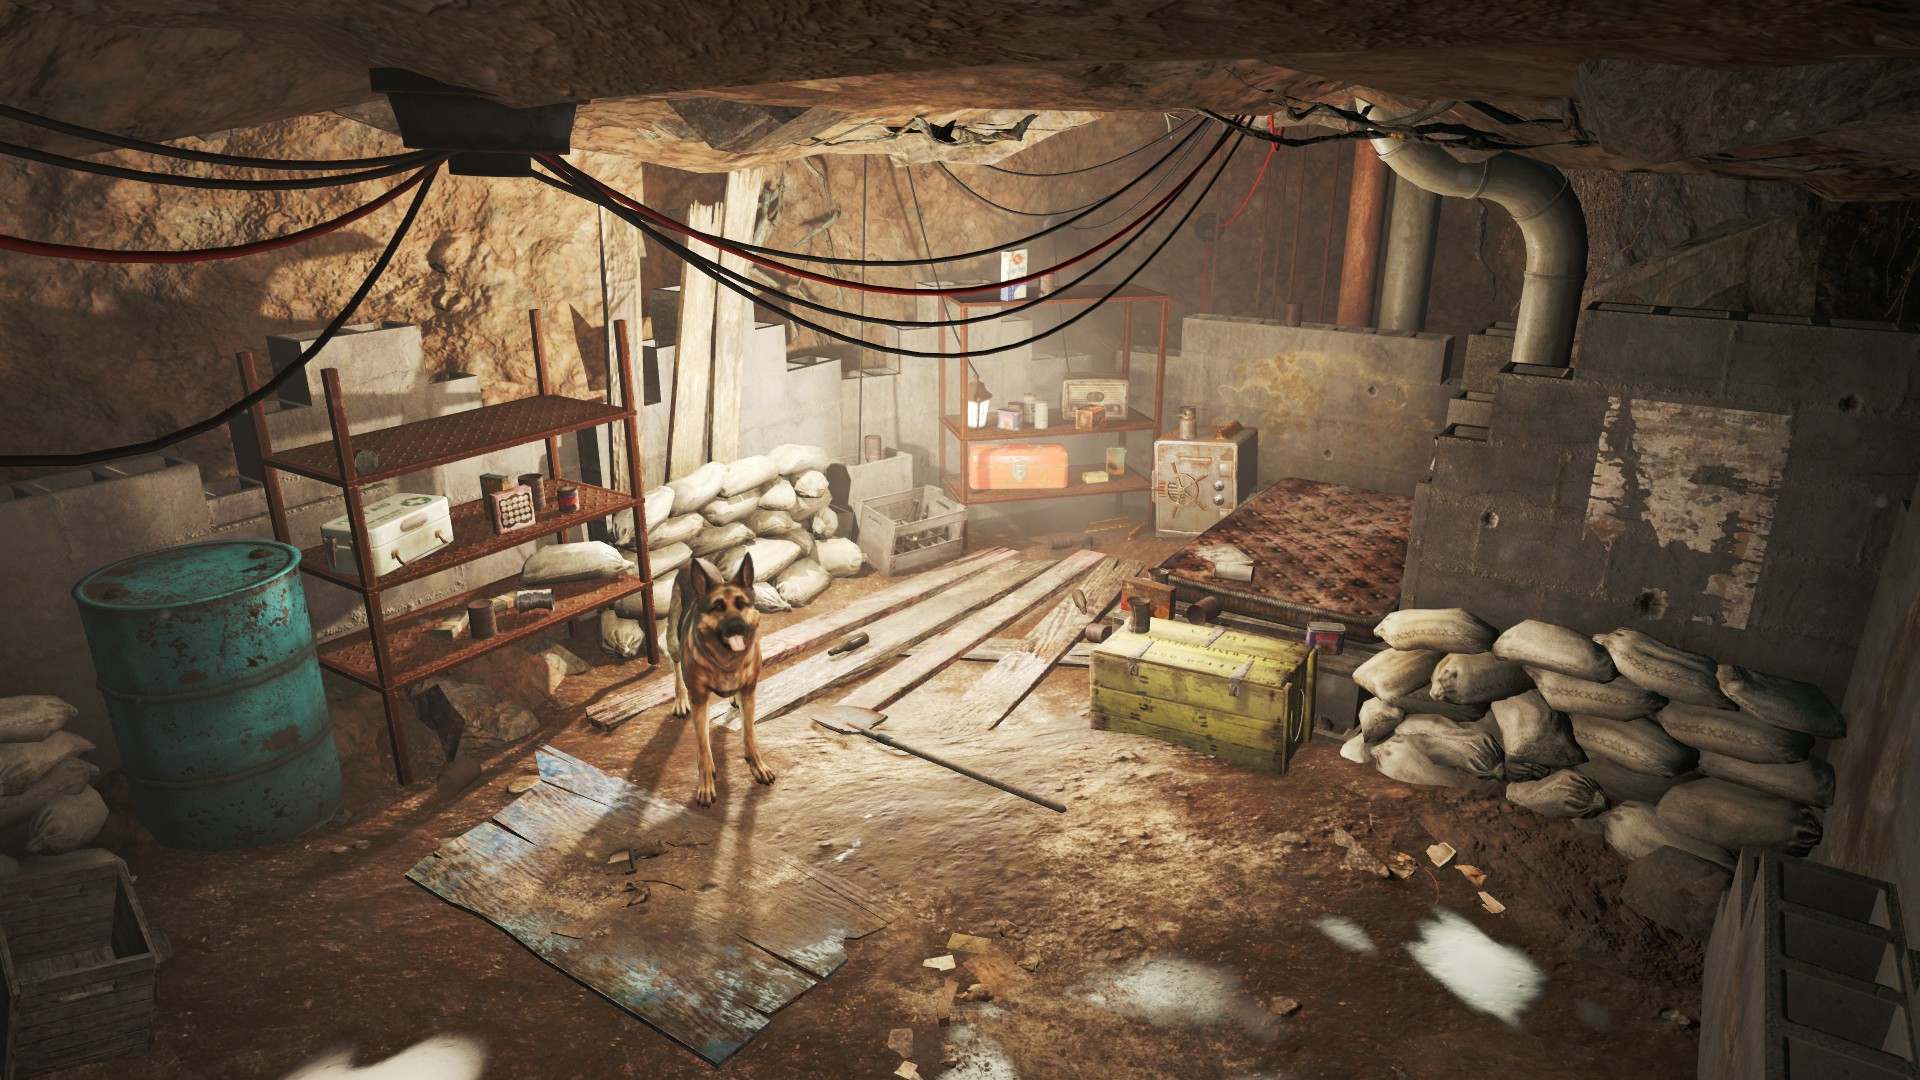 Root cellar fallout wiki fandom powered by wikia for Best house designs fallout 4